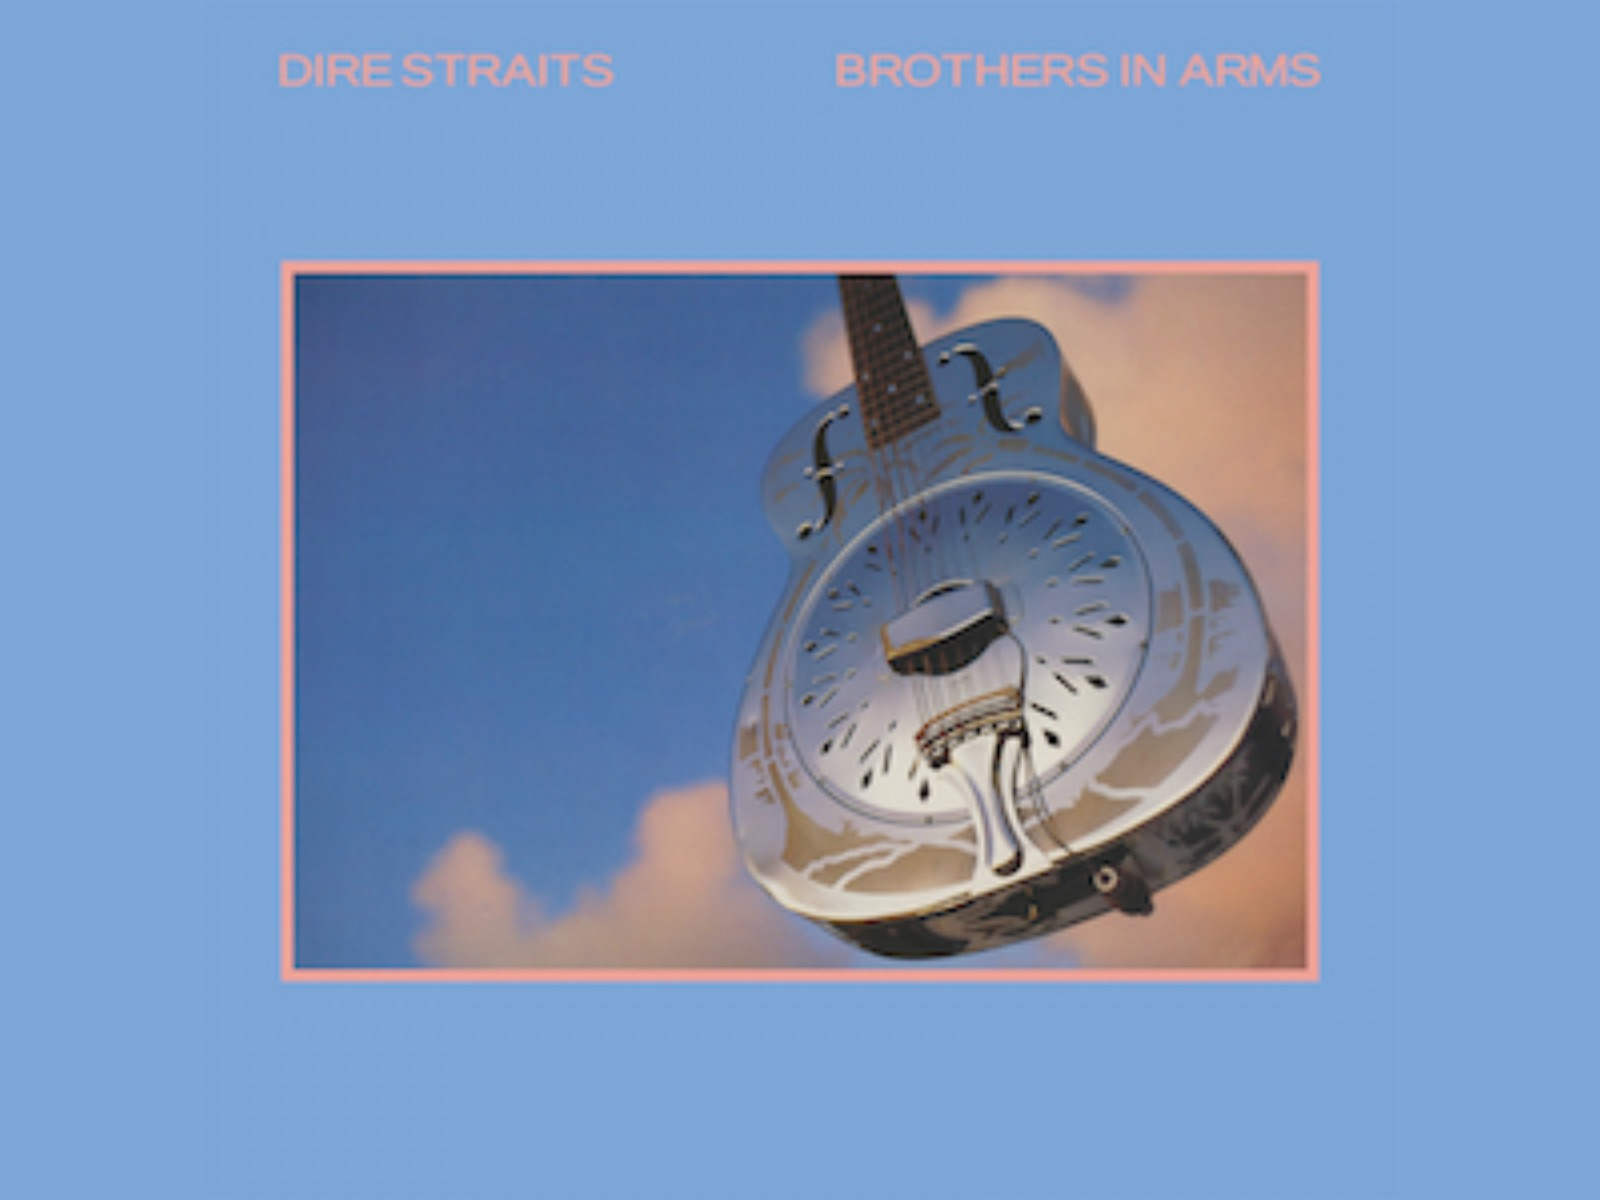 May 25, 1985: 'Brother In Arms' reaches number 1 in the UK